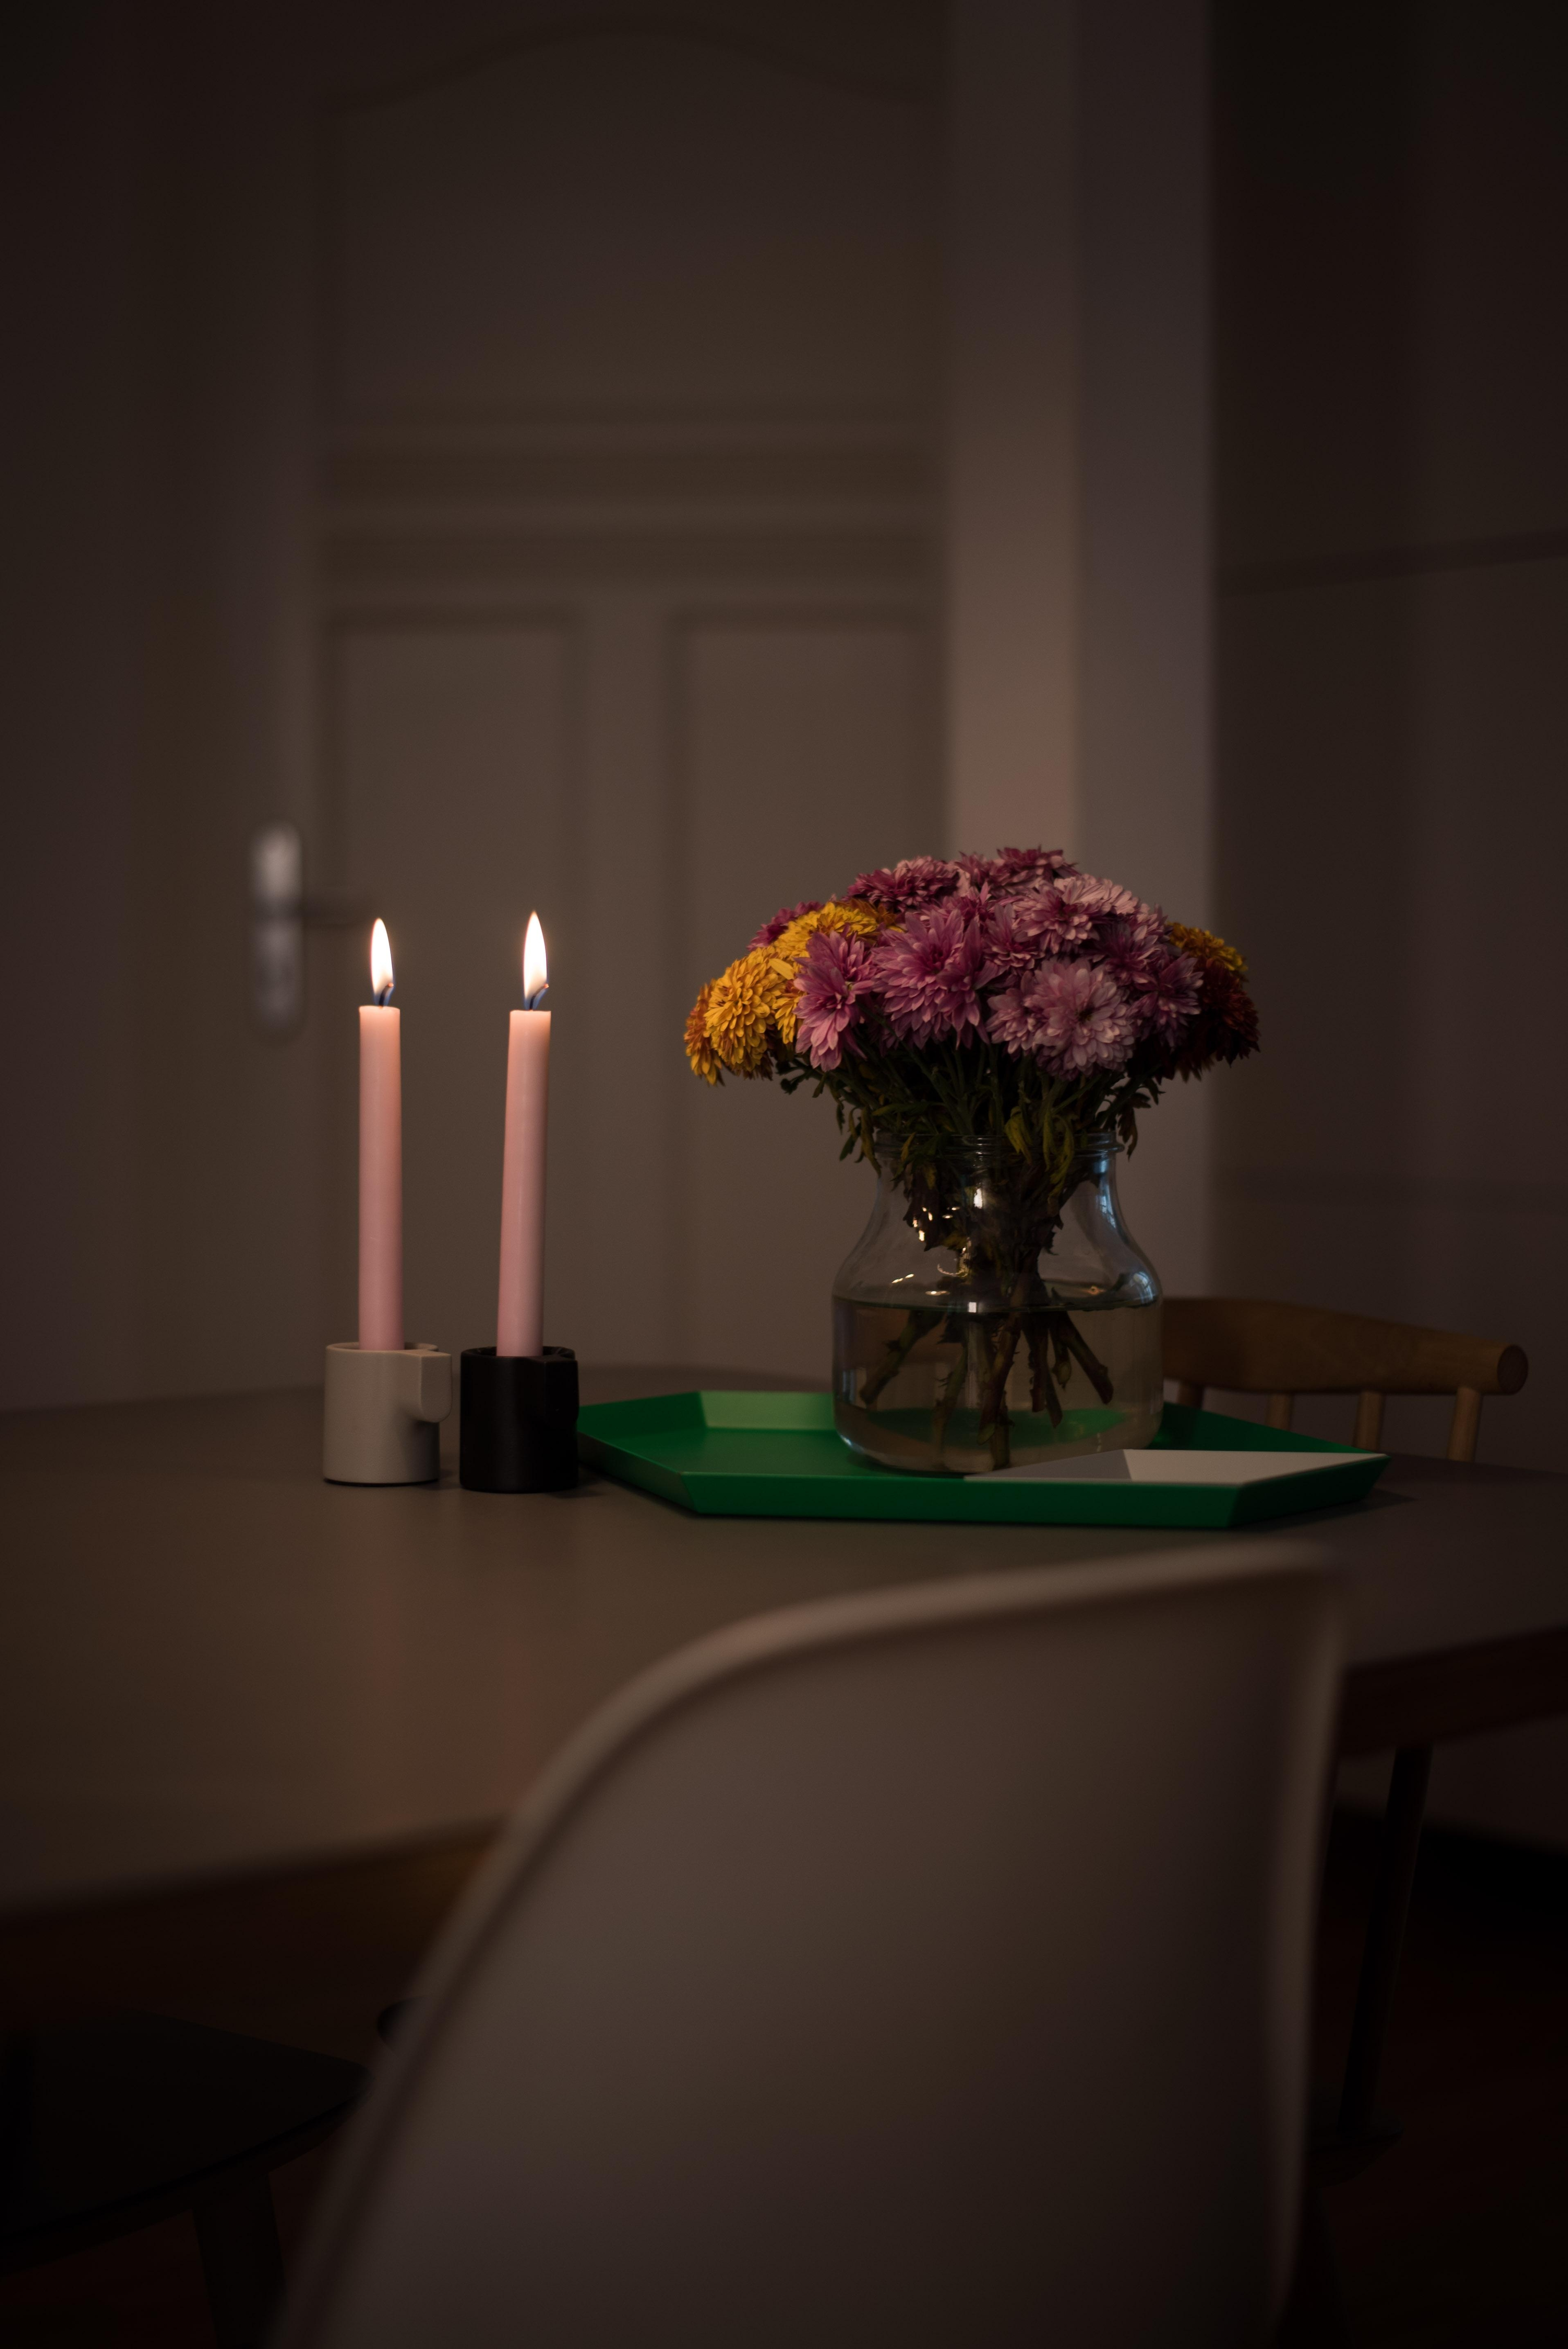 Fridayflowers  candles freshflowers kitchentable interior  d3861a6d 2e09 4020 916d a324b53f95a6